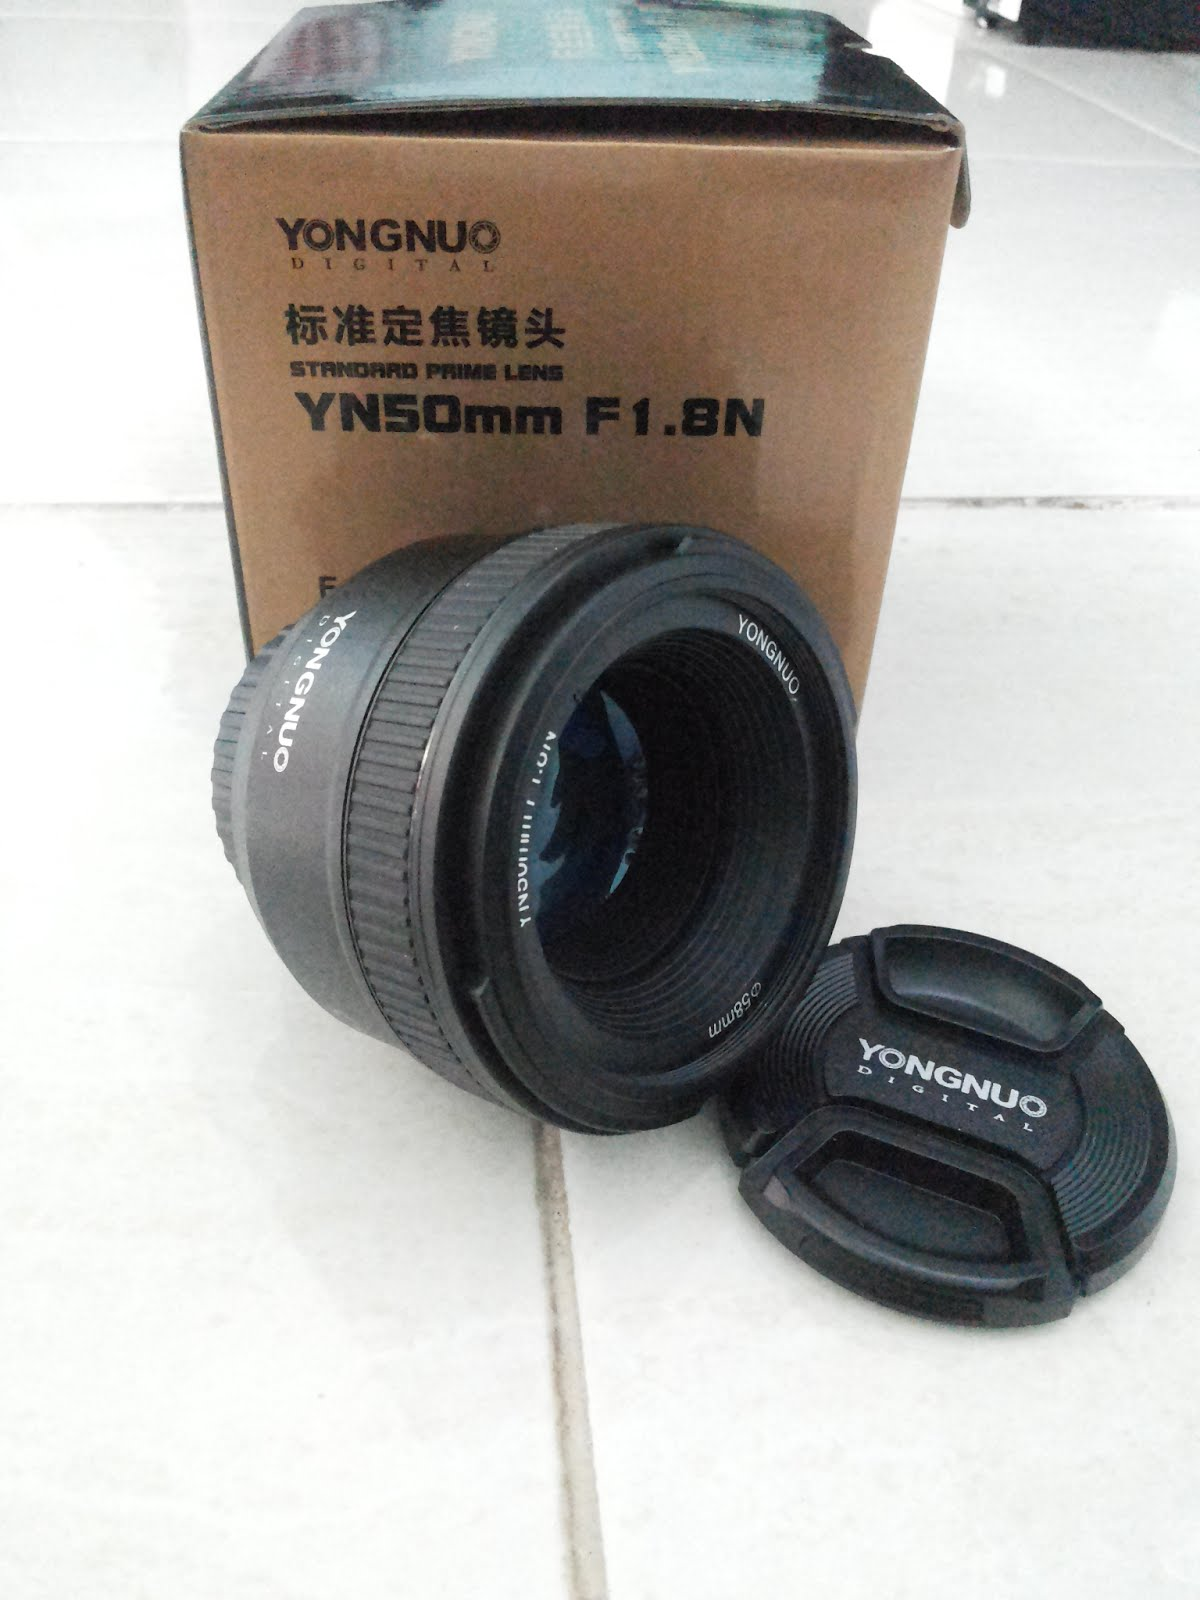 Jual Lensa Nikon 50mm 18 Welcome To Af F 18d 50 Mm D Free Uv Filter Lens Hood Yongnuo F18 For